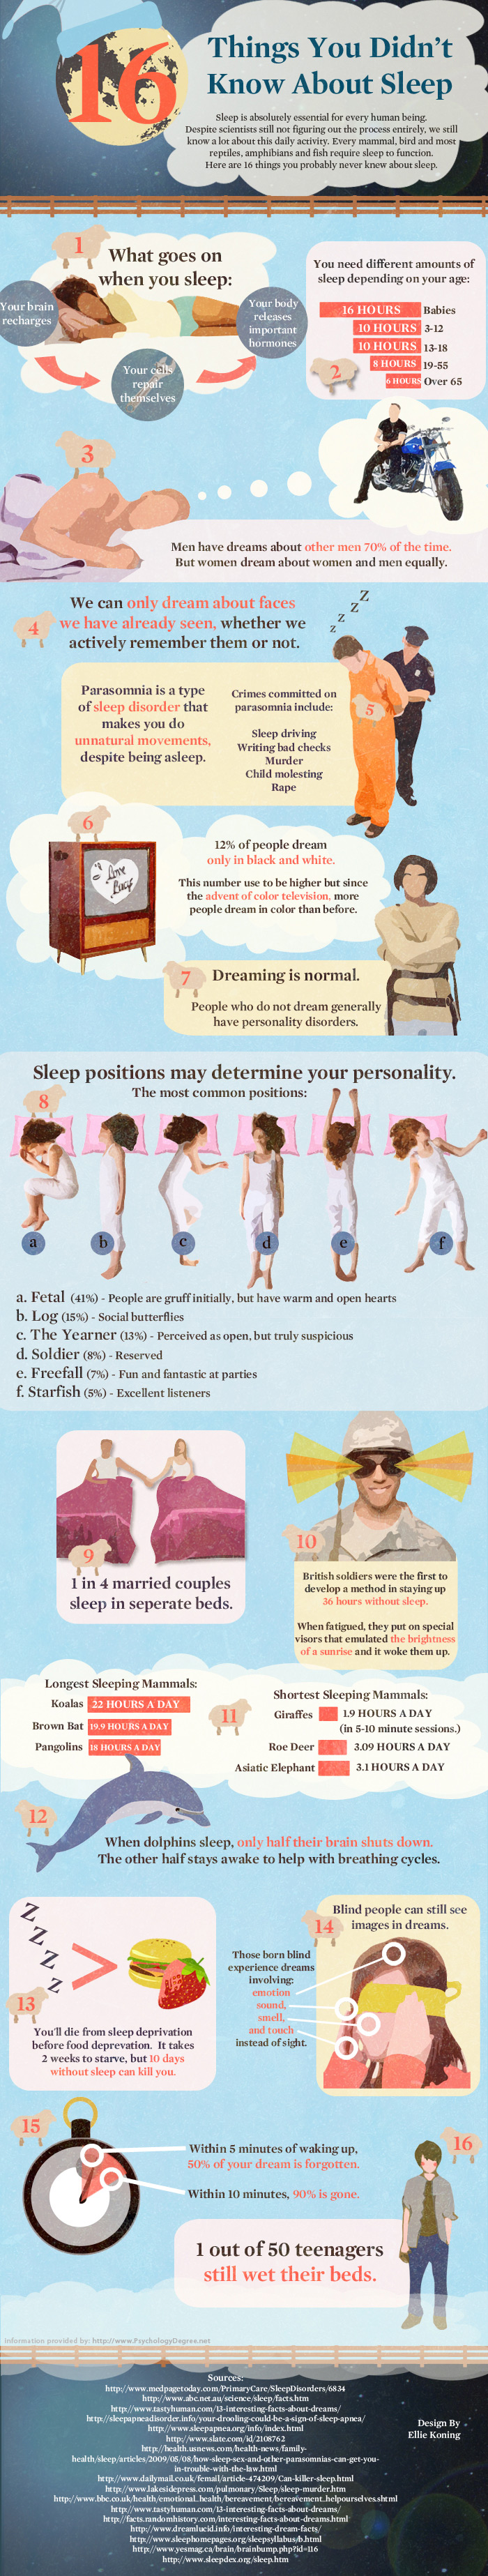 interesting-sleep-facts-infographic.jpeg